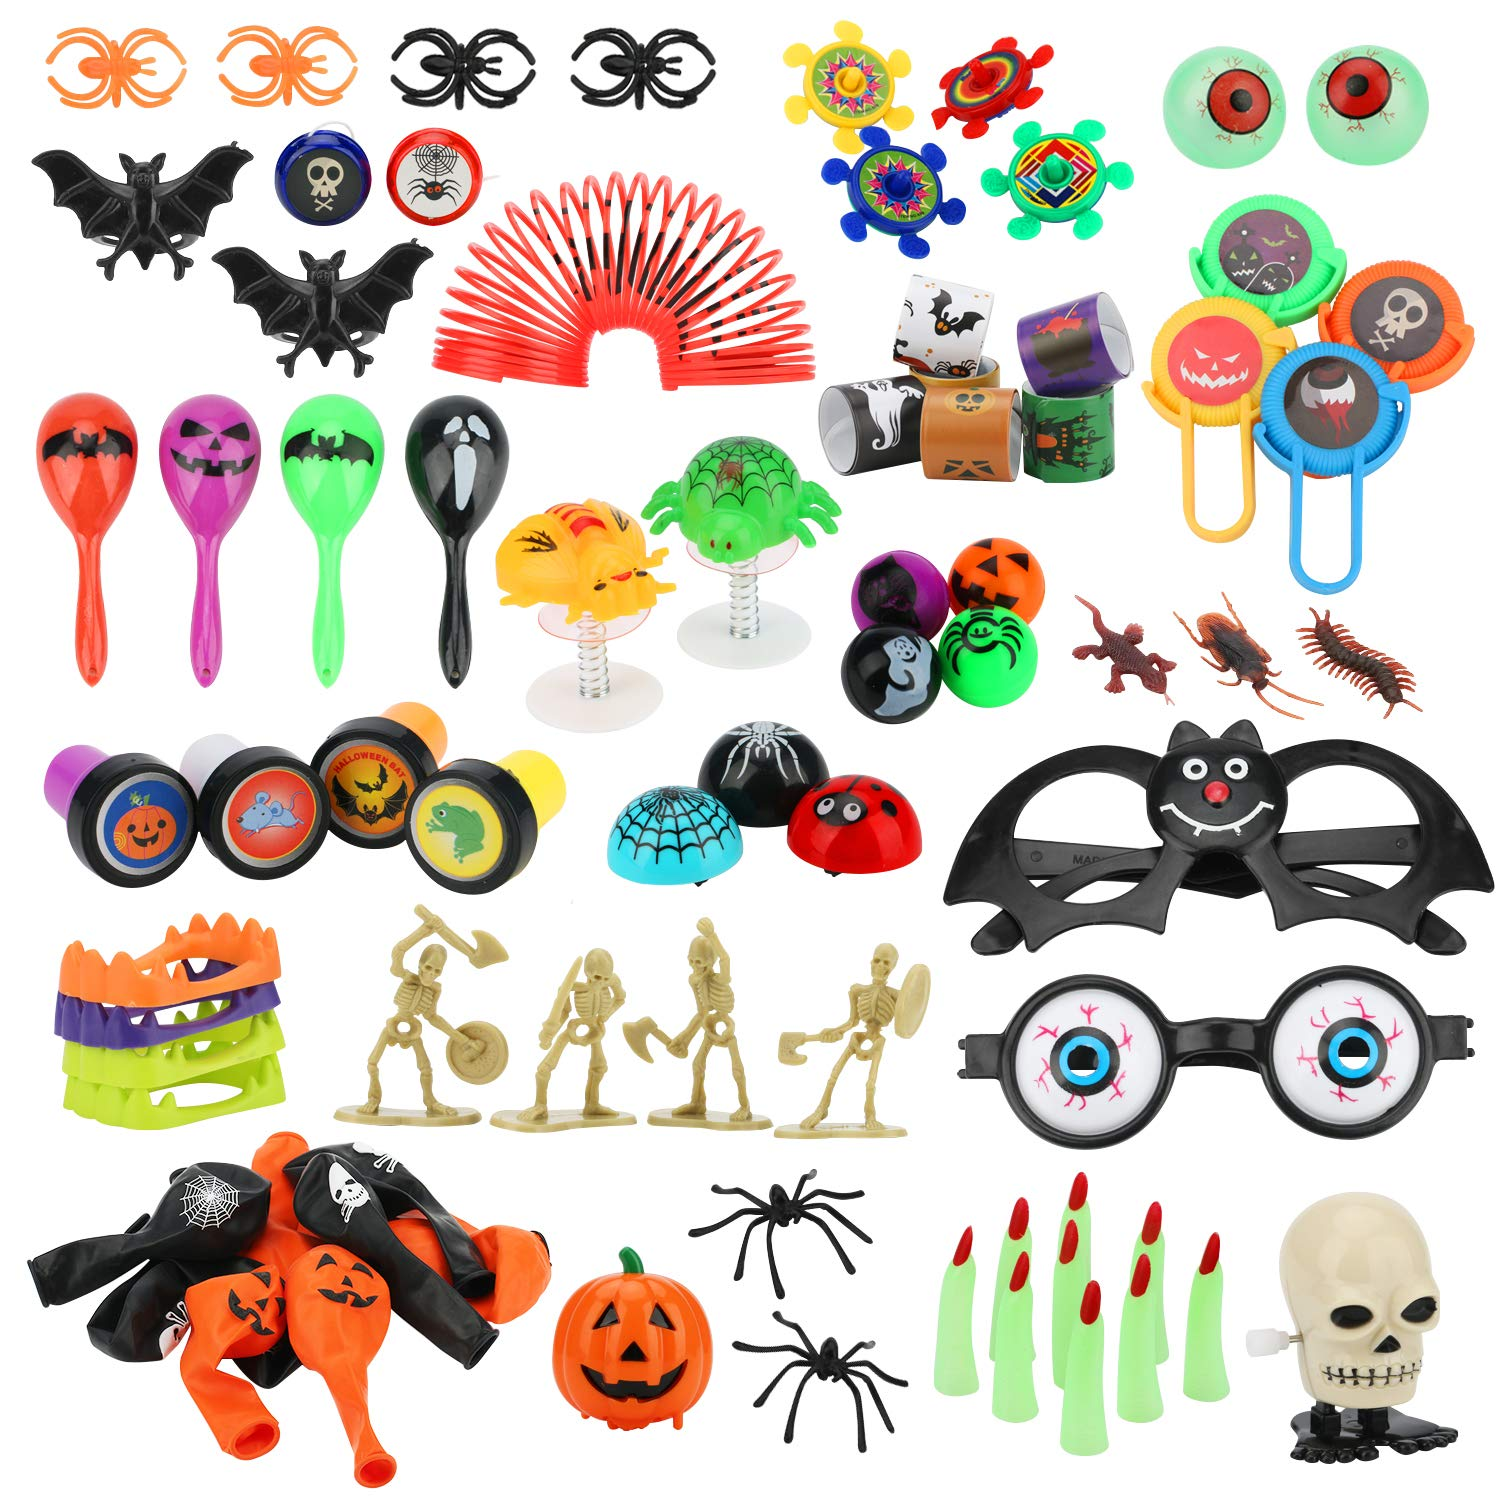 100 Pieces Halloween Toys Assortment for Treasure Boxes Trick or Treat Bags Goodie Bags Halloween Party Favors by APPHOME